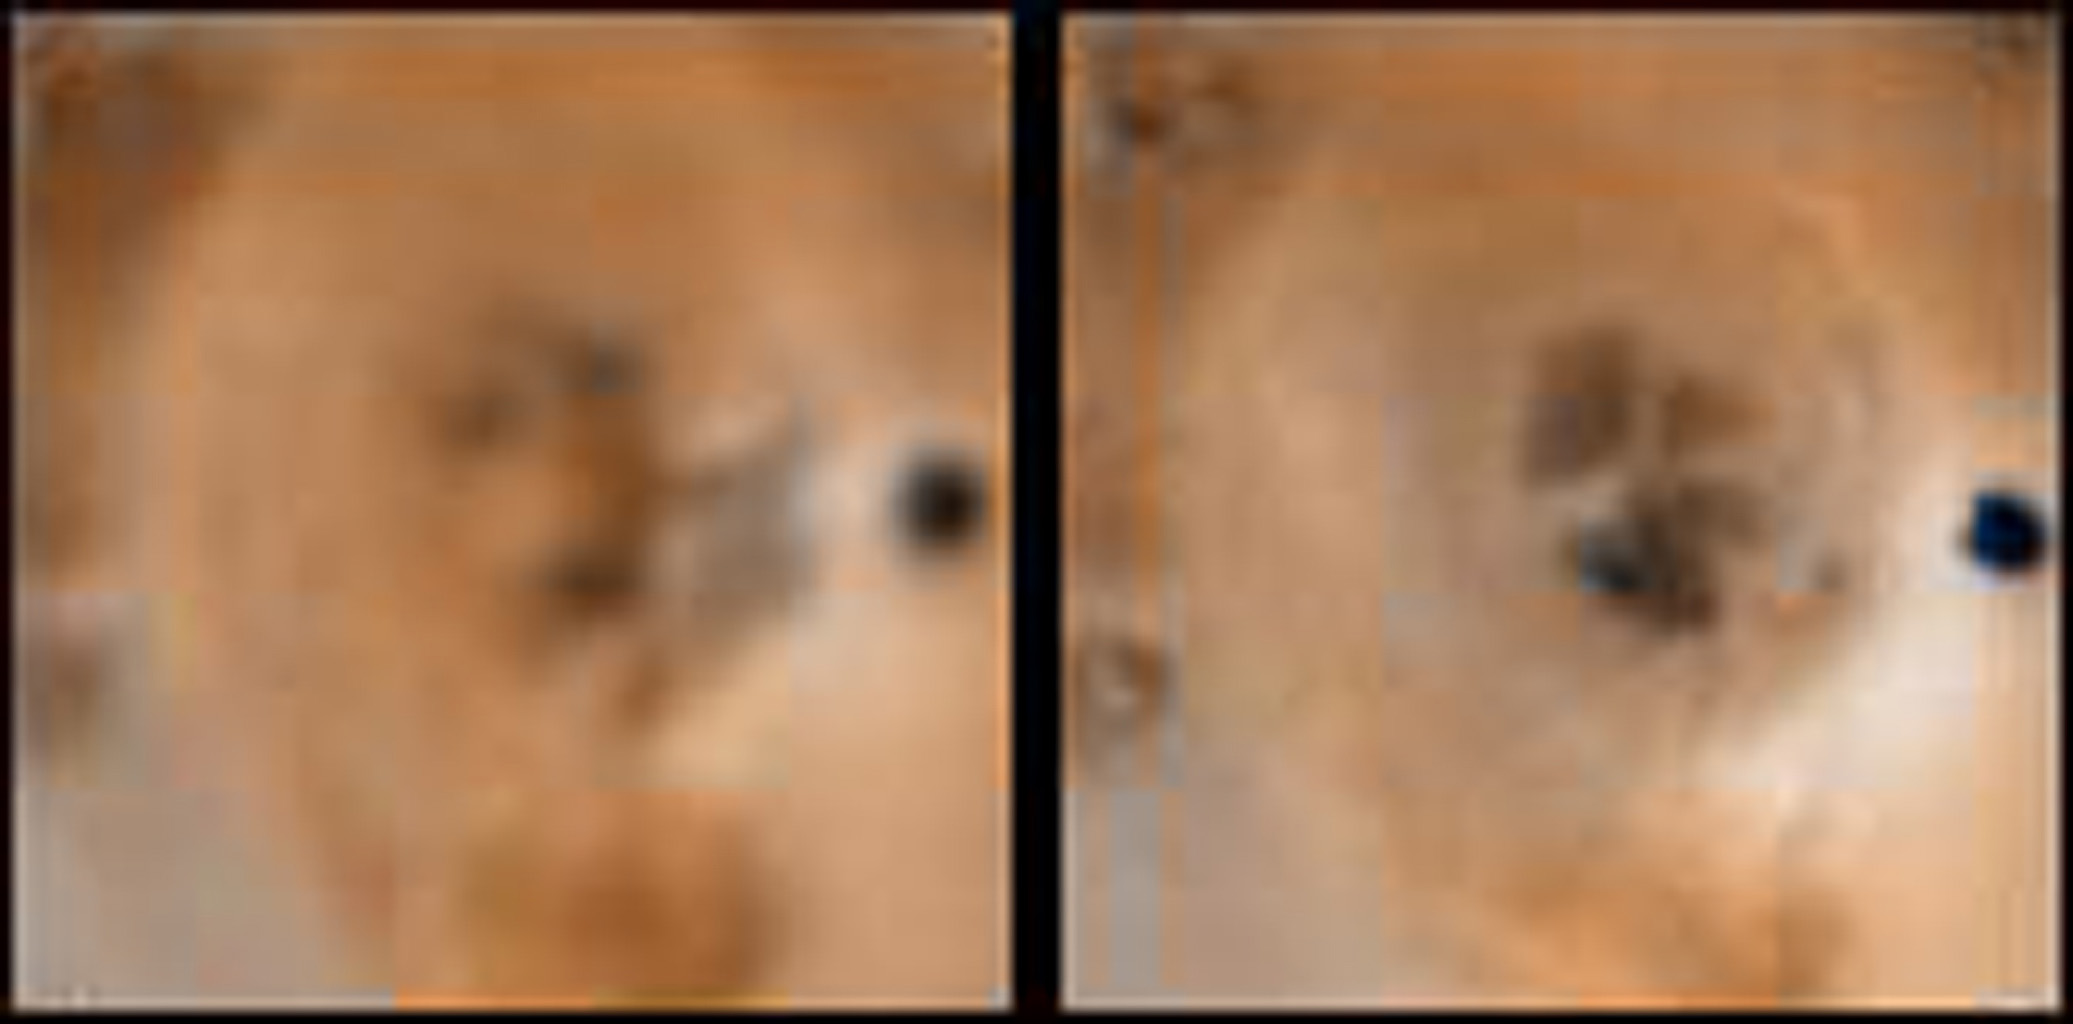 Detail of changes around a probable vent about 650 kilometers north of Prometheus on Jupiter's moon Io as seen in images obtained by the NASA's Voyager 1 spacecraft in April 1979 (left) and NASA's Galileo spacecraft on Sept. 7th, 1996 (right).